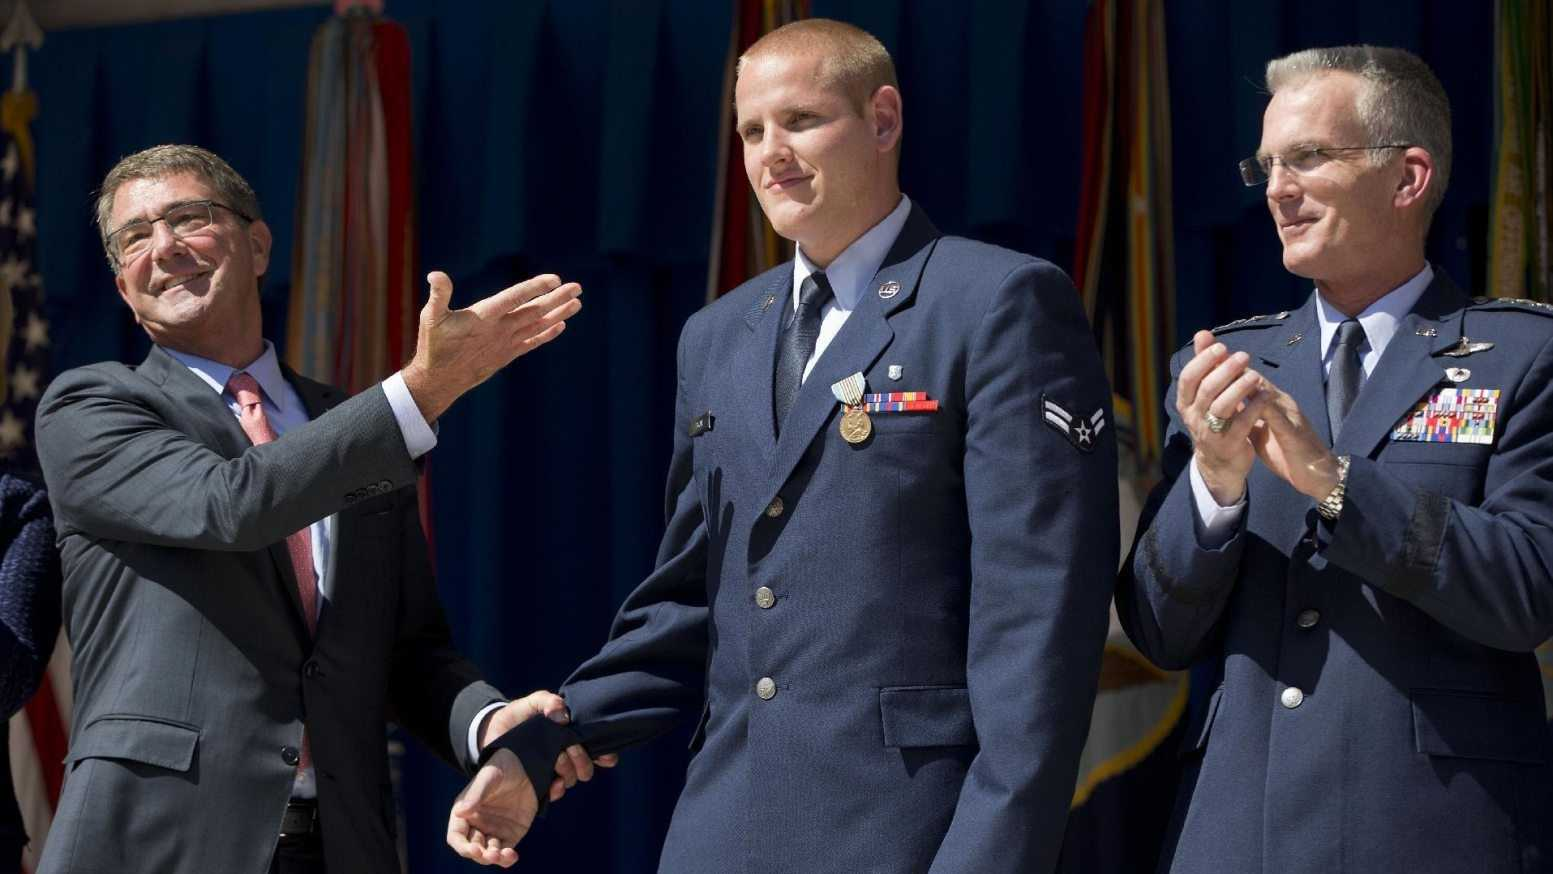 Defense Secretary Ash Carter, left, gestures towards Airman 1st Class Spencer Stone, center, before awarding Stone with the Airman's Medal and Purple Heart medal, during a ceremony with Joint Chiefs Vice Chairman Gen. Paul Selva, right, at the Pentagon, Thursday, Sept. 17, 2015. Stone along with Oregon National Guardsman Alek Skarlatos and Anthony Sadler where honored for heroically subduing a gunman on a Paris-bound passenger train last month.